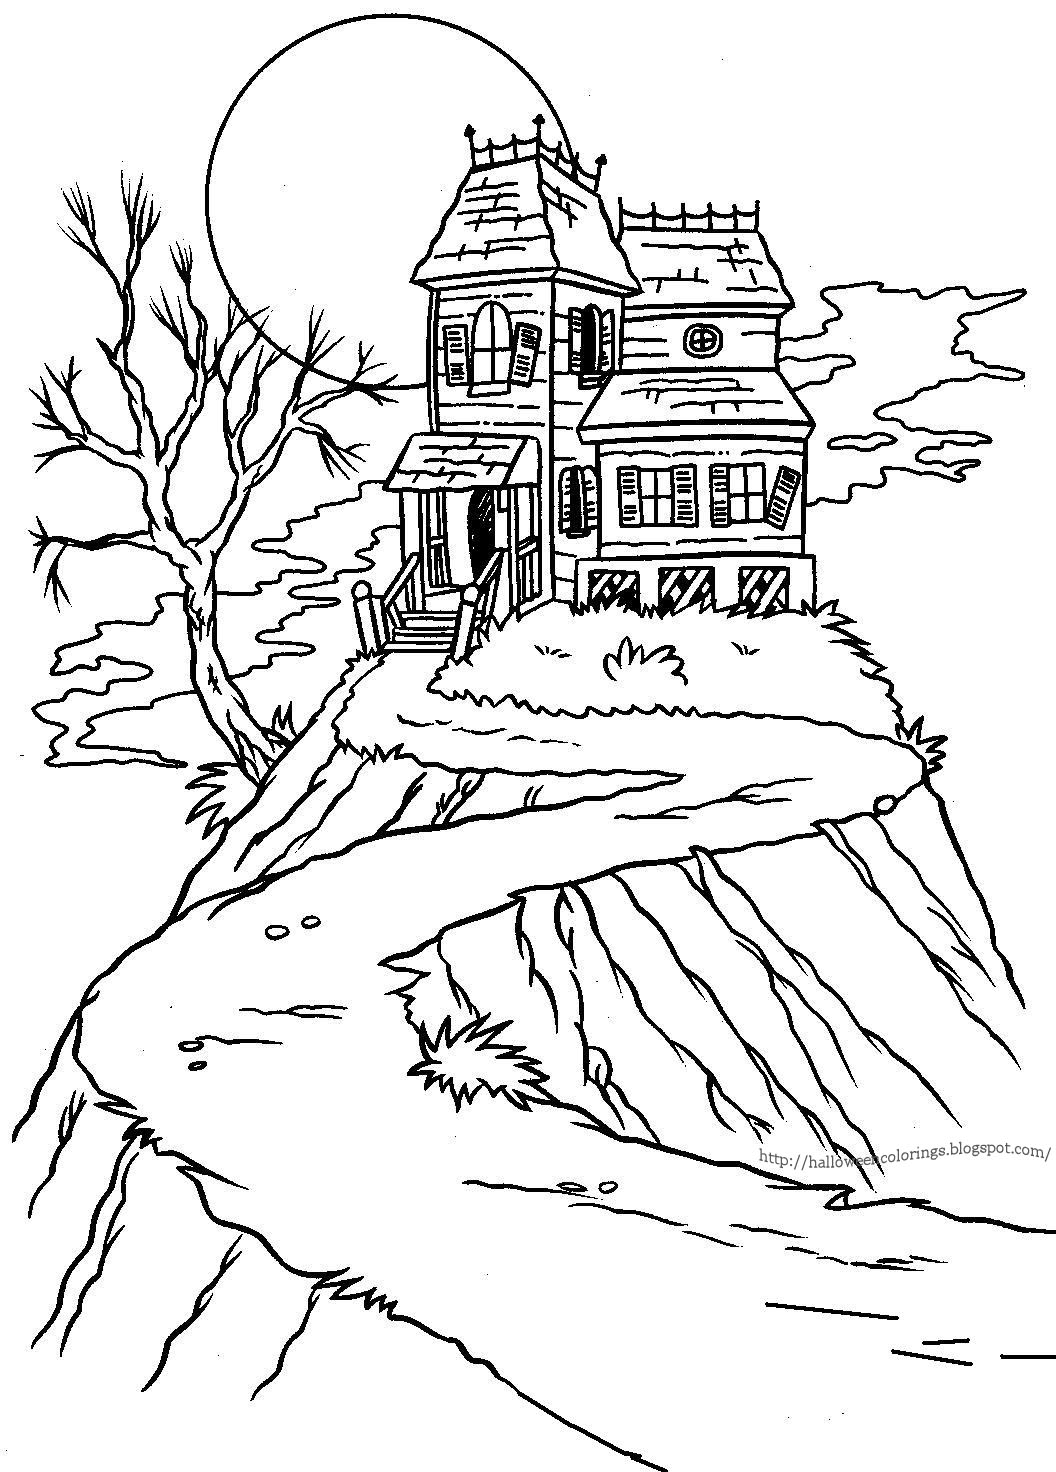 haunted house coloring pages to print - halloween colorings